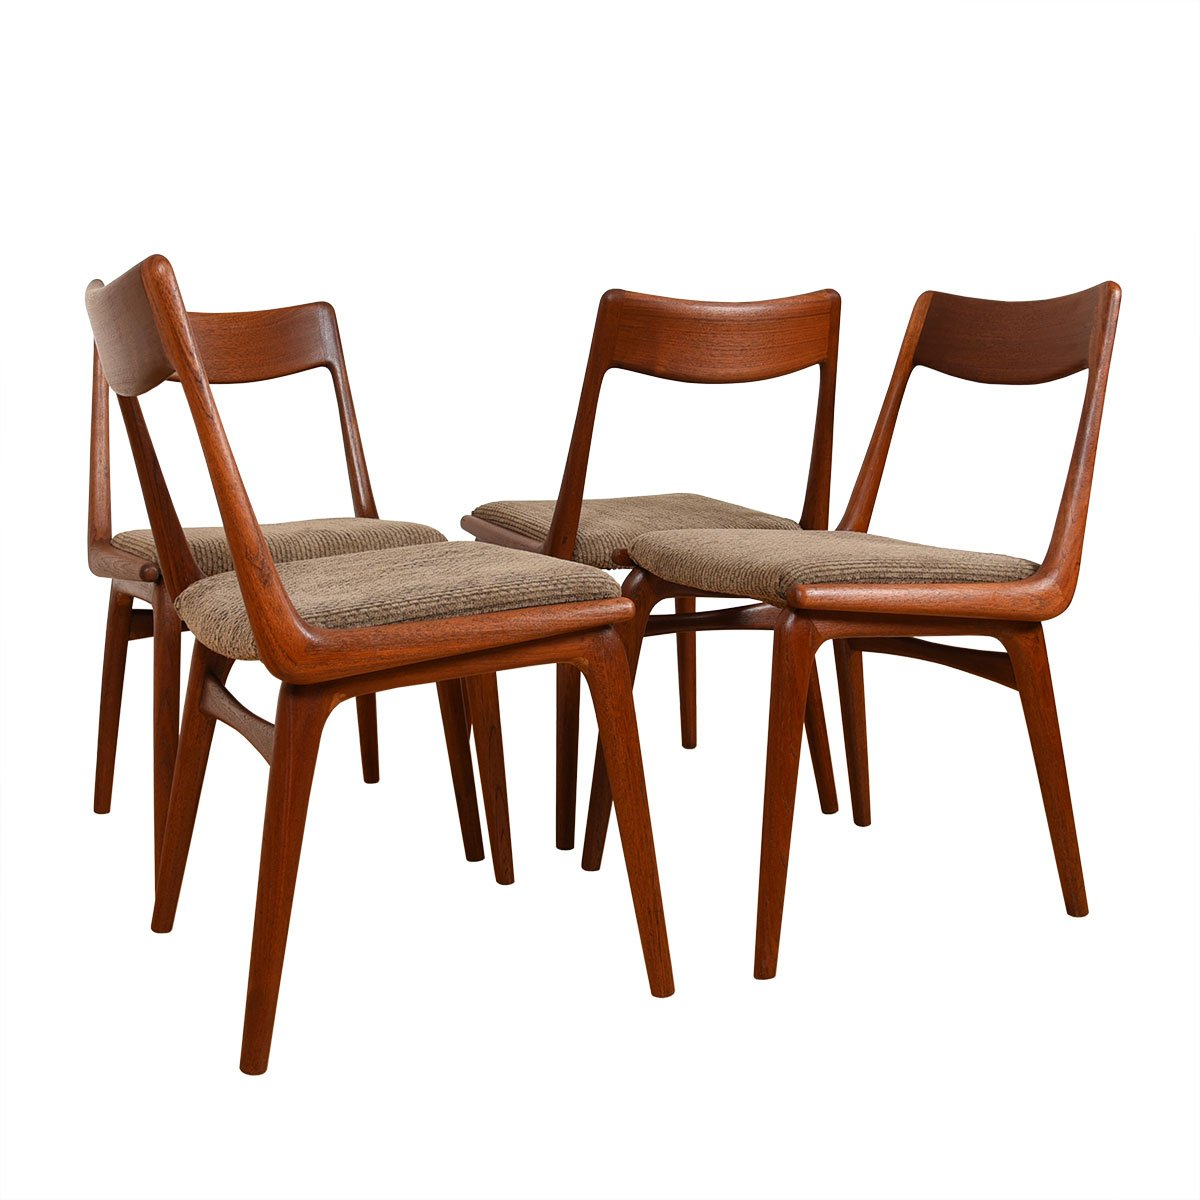 Set of 4 Danish Boomerang Dining Chairs by Erik Christensen